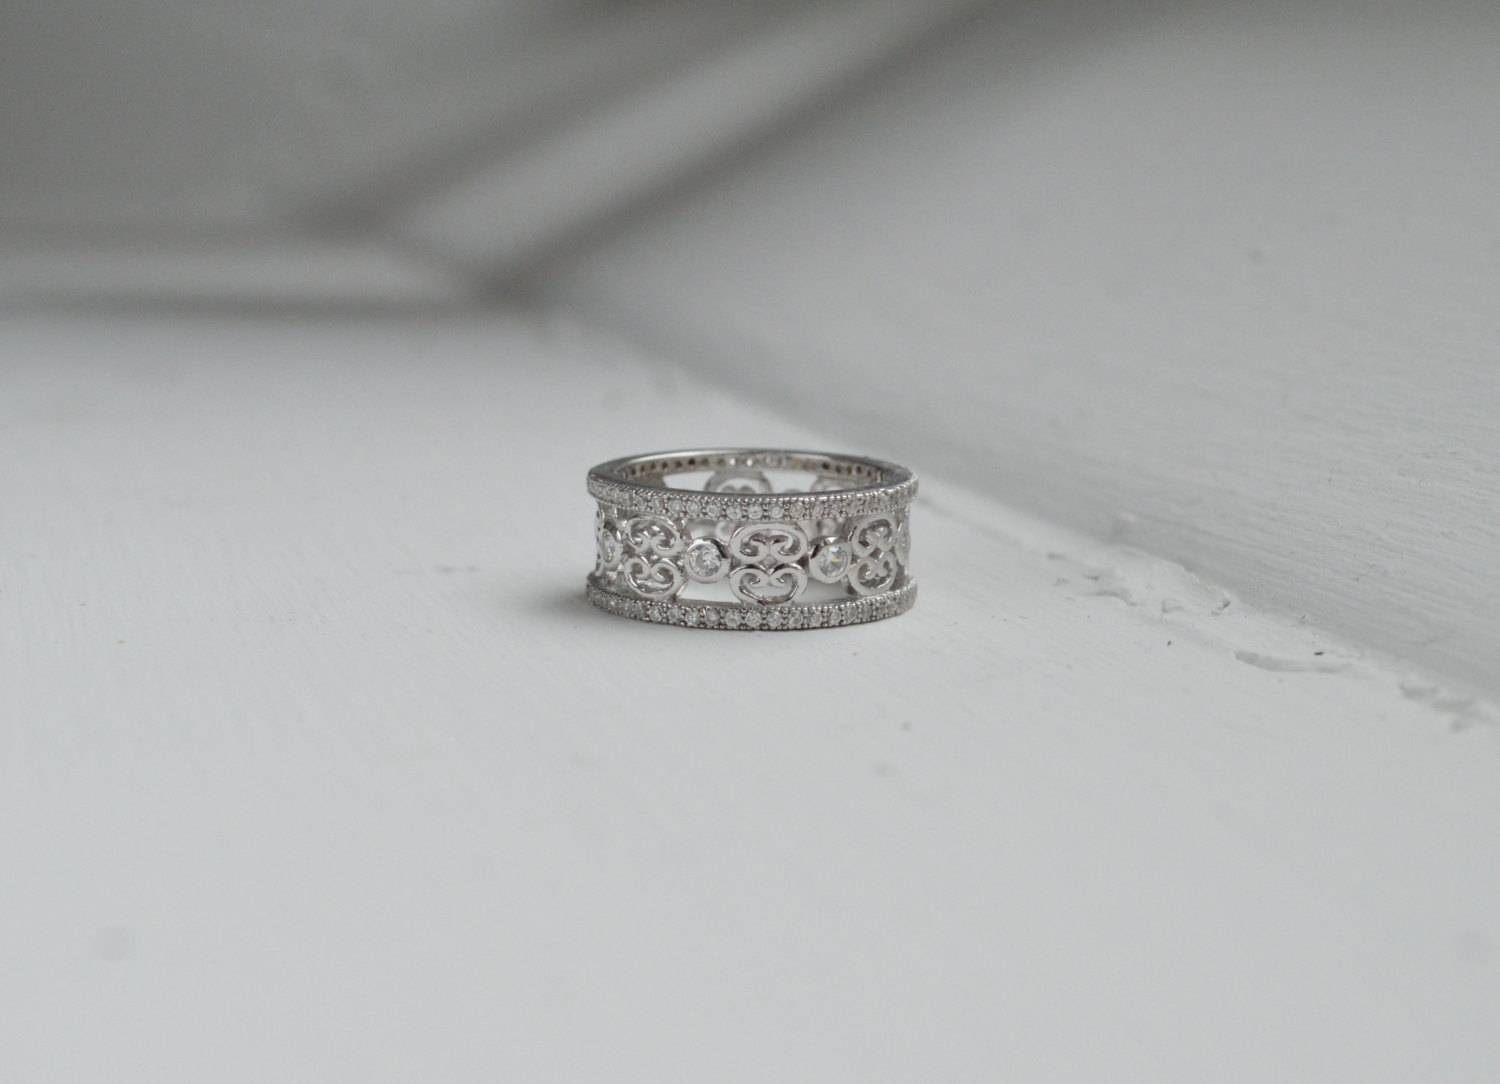 Art Deco Wedding Band Wide Band Eternity Ring Micro Pave Within Most Recent Wide Band Anniversary Rings (View 6 of 25)